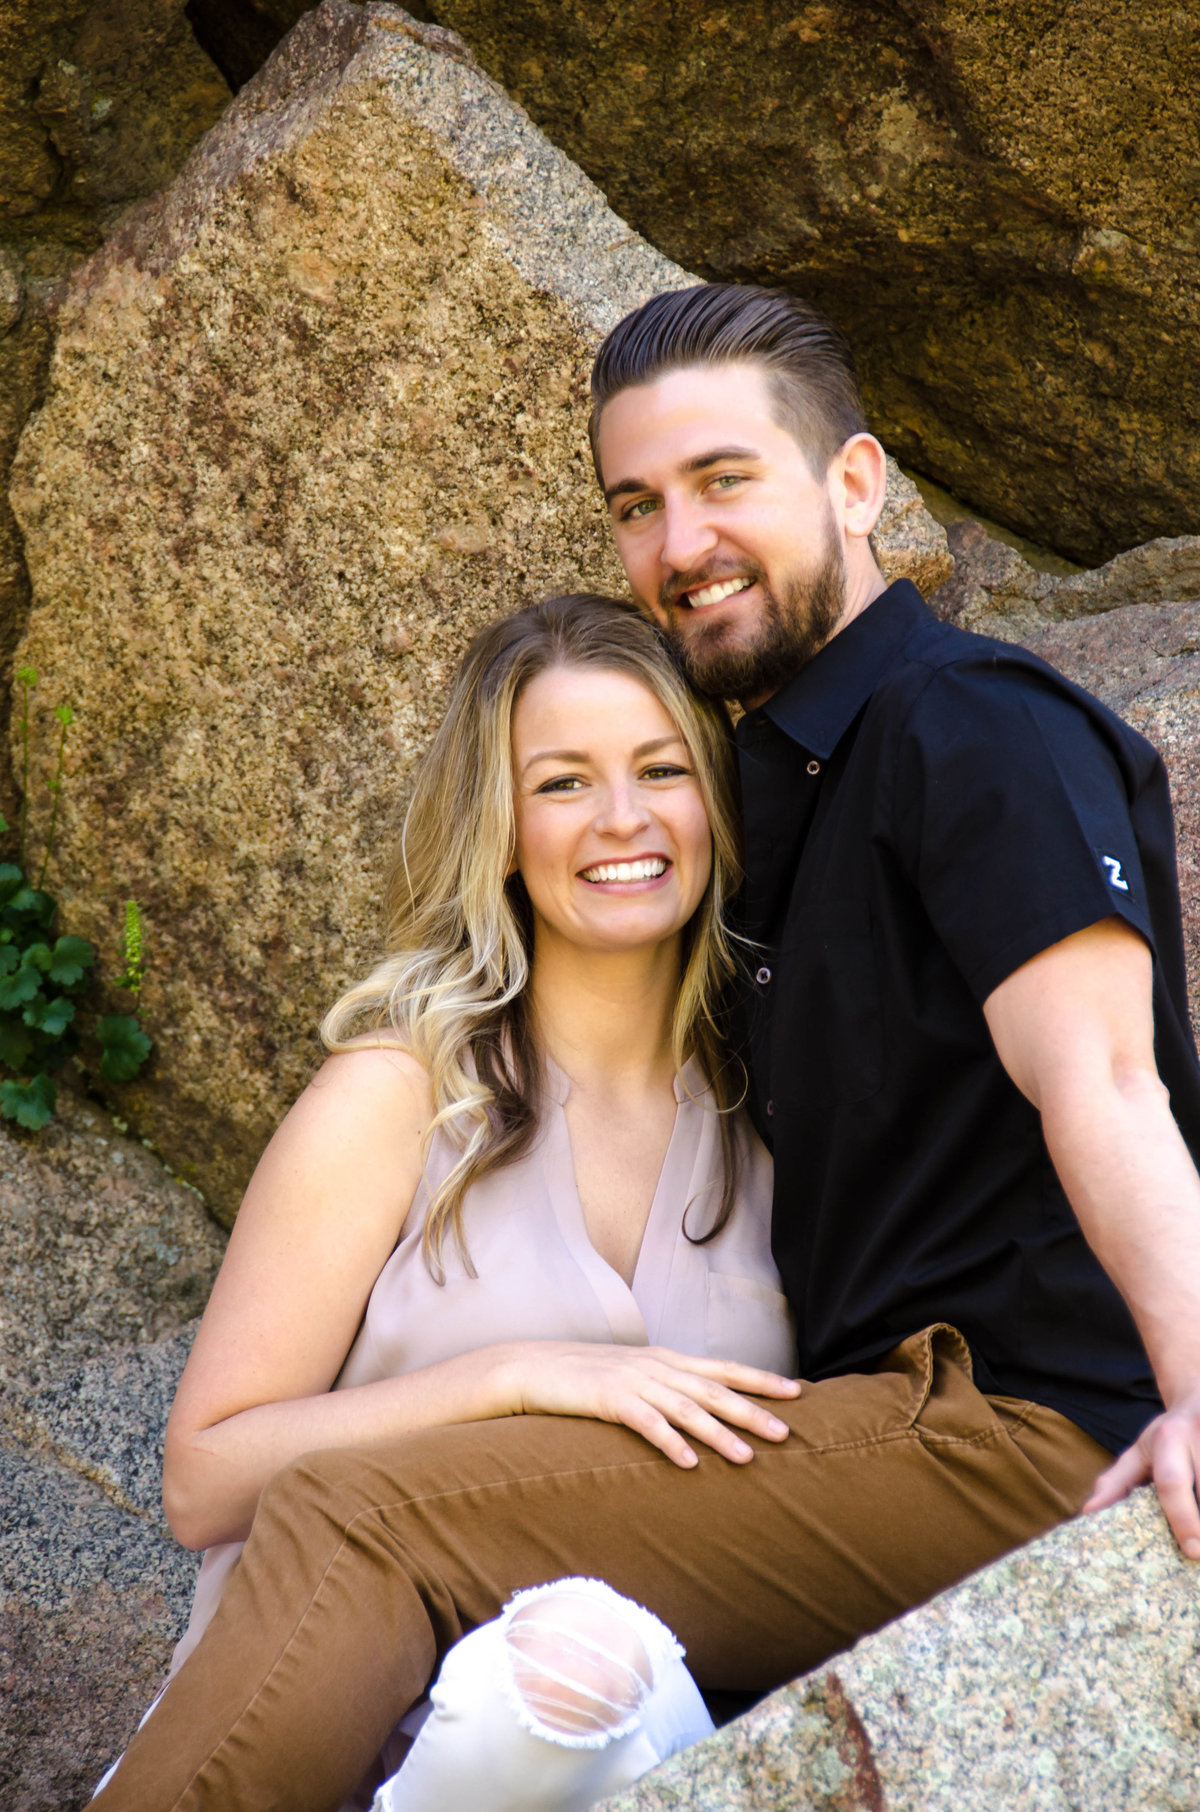 2017-06-04 Ashley+Jordan+Engagment+Boulder+CO (55 of 55)